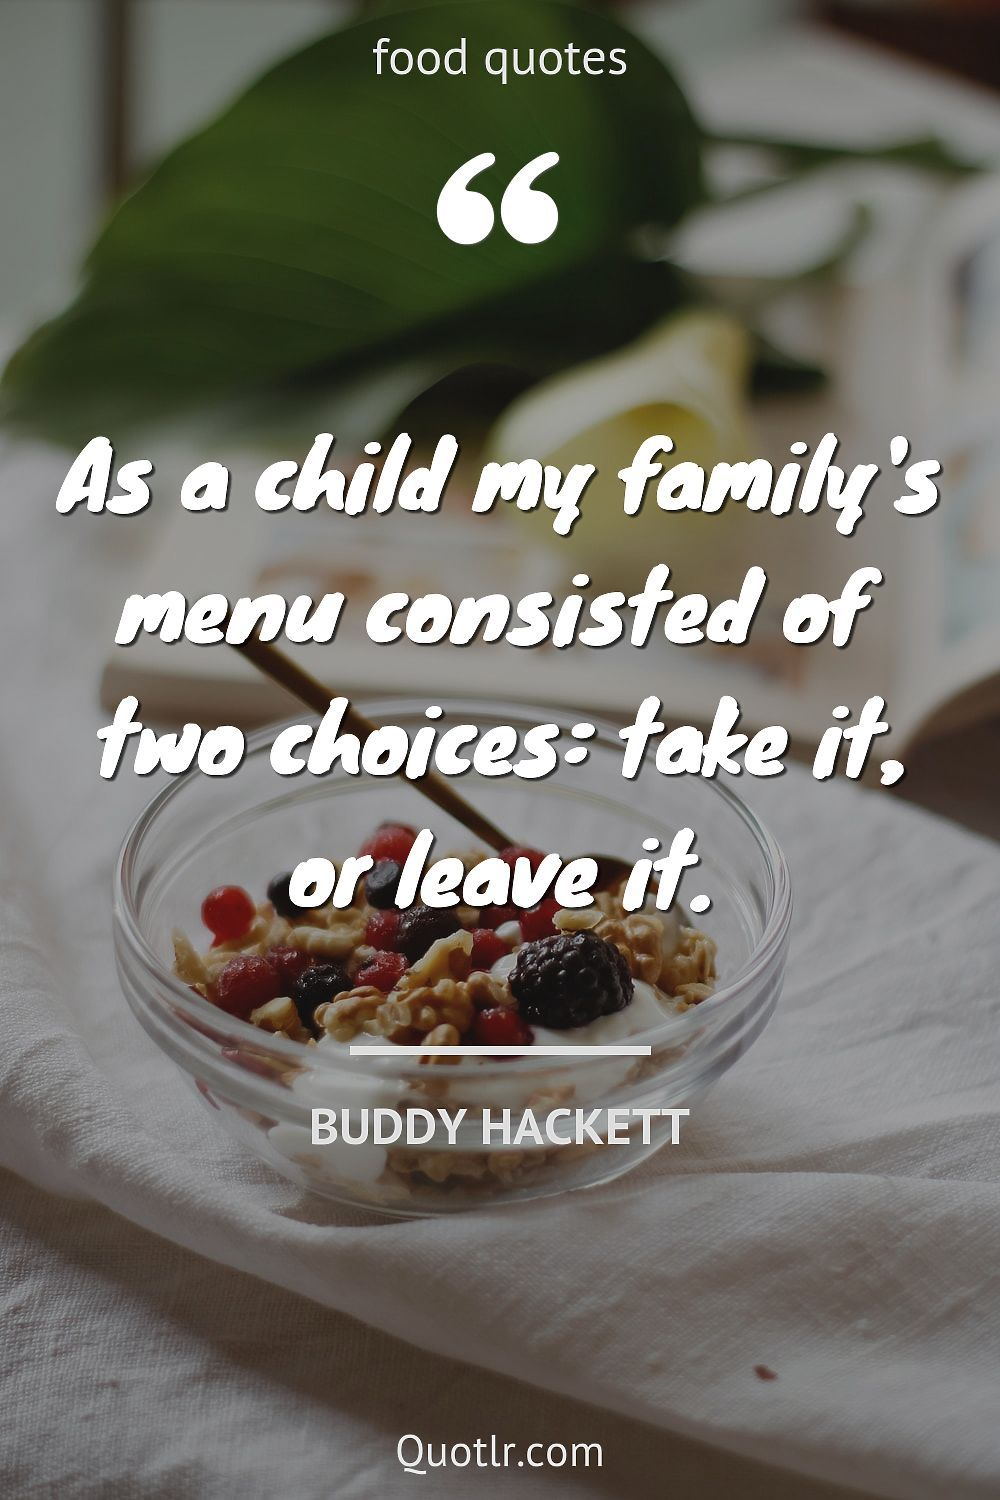 Good Food Quotes To Get The Best Of Your Day In 2021 Food Quotes Food Buddy Hackett